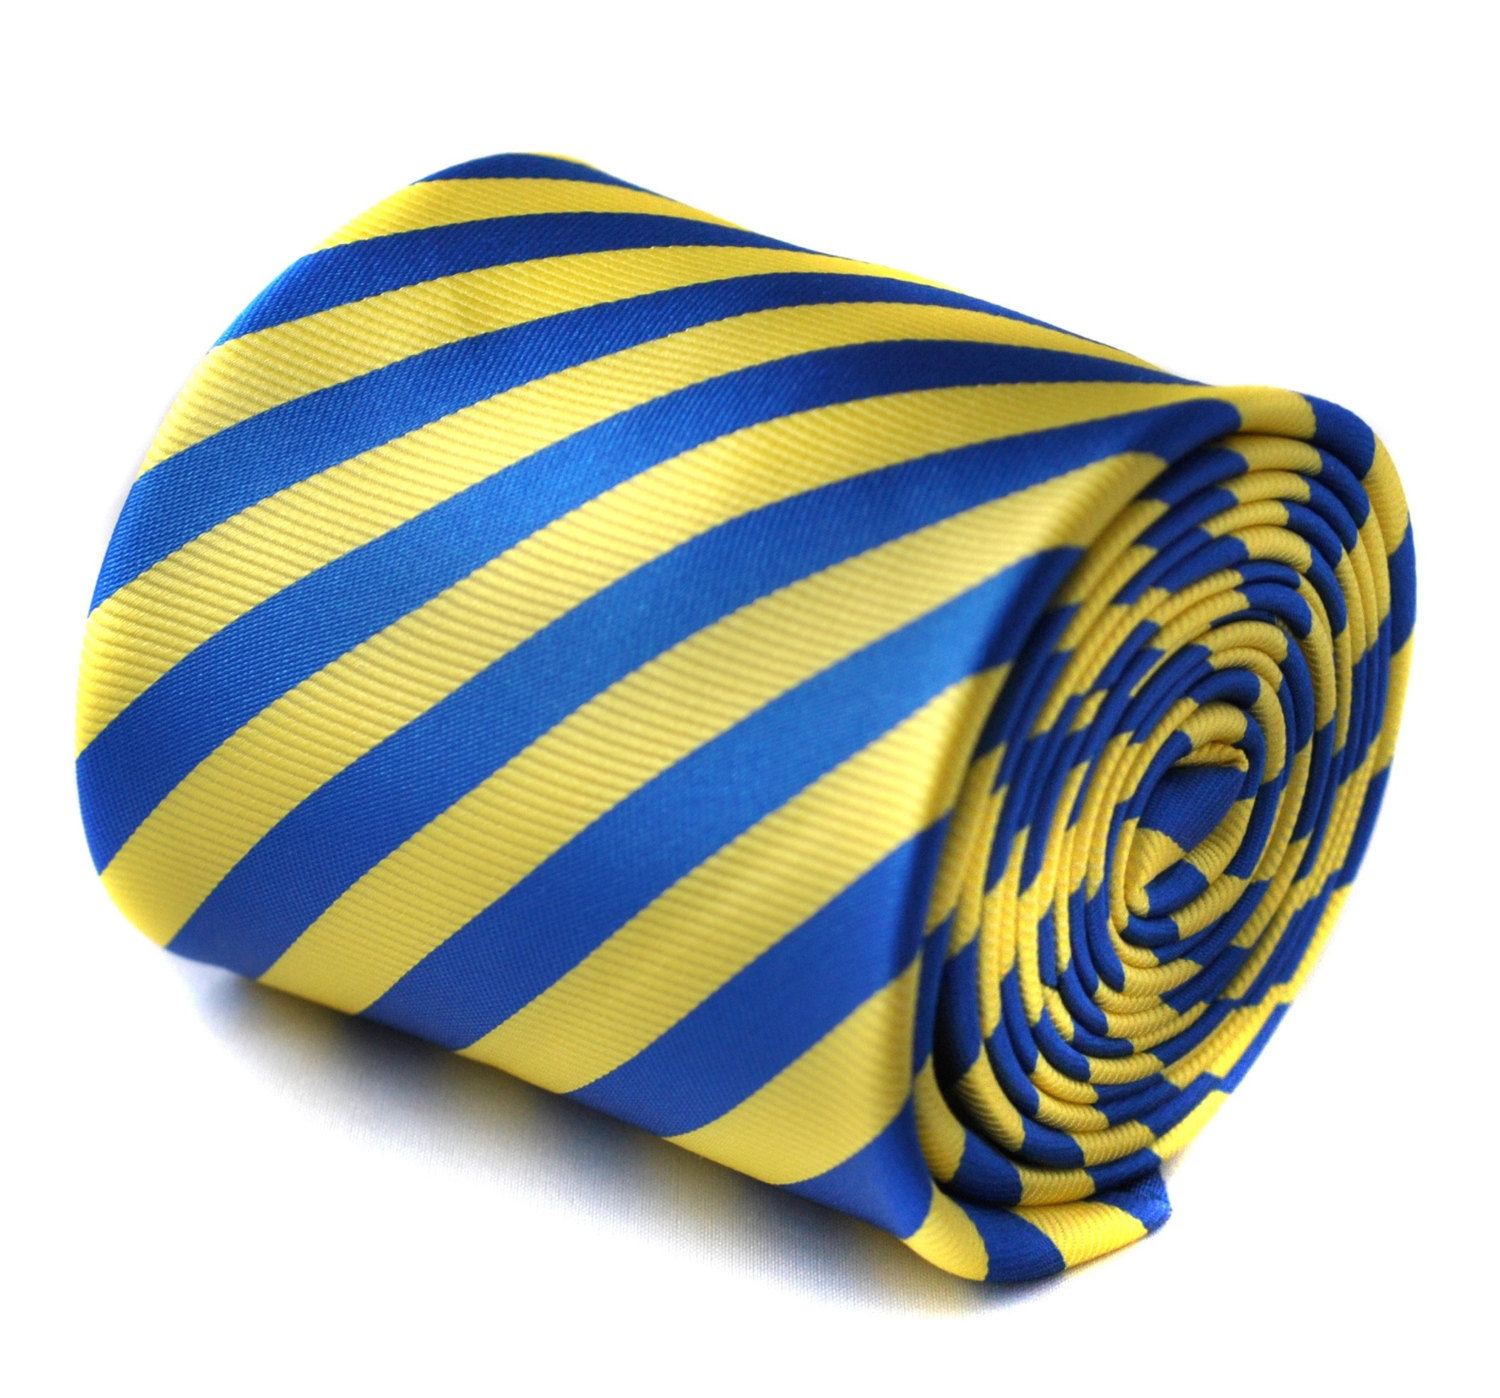 royal blue and yellow striped tie with signature floral design to the rear by Fr